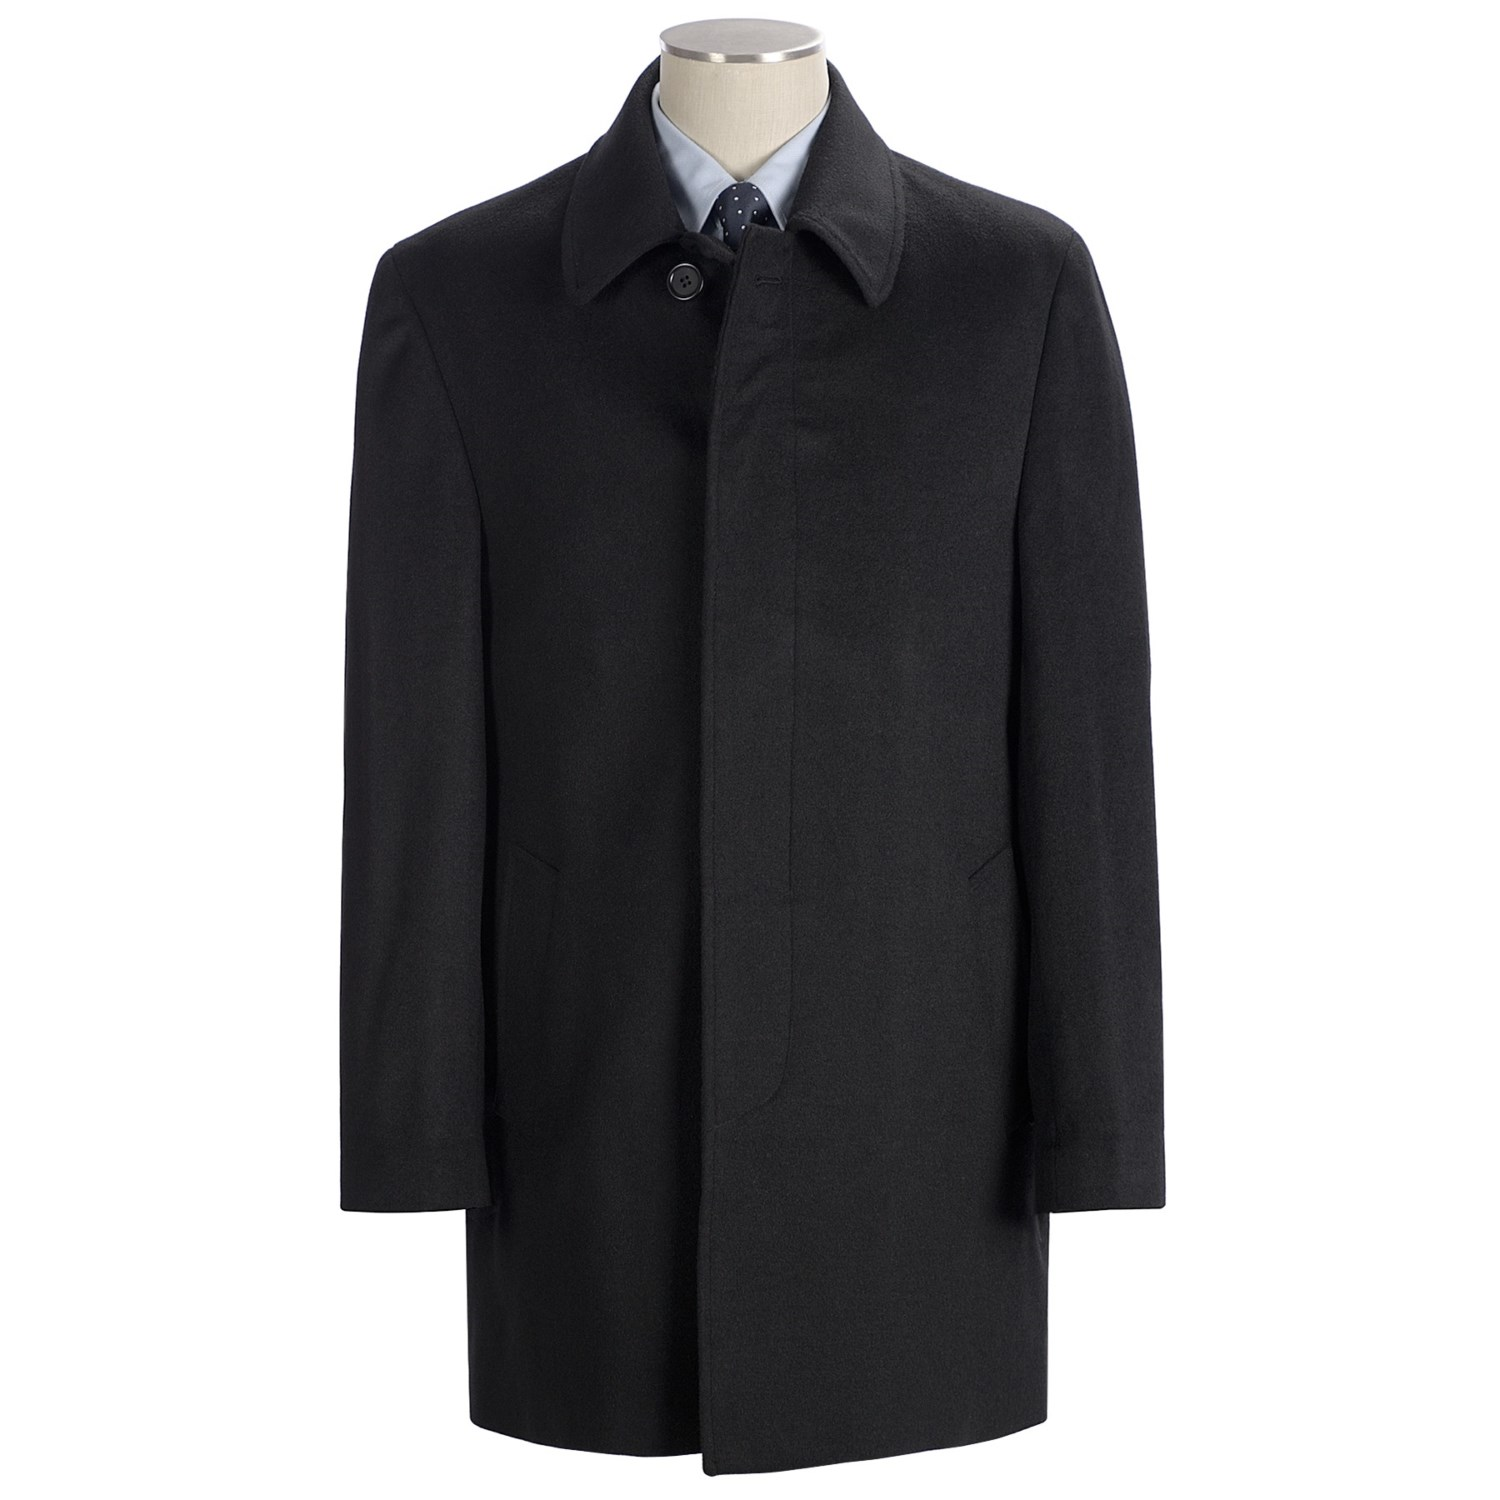 Men's Dress Coats: Average savings of 61% at Sierra Trading Post